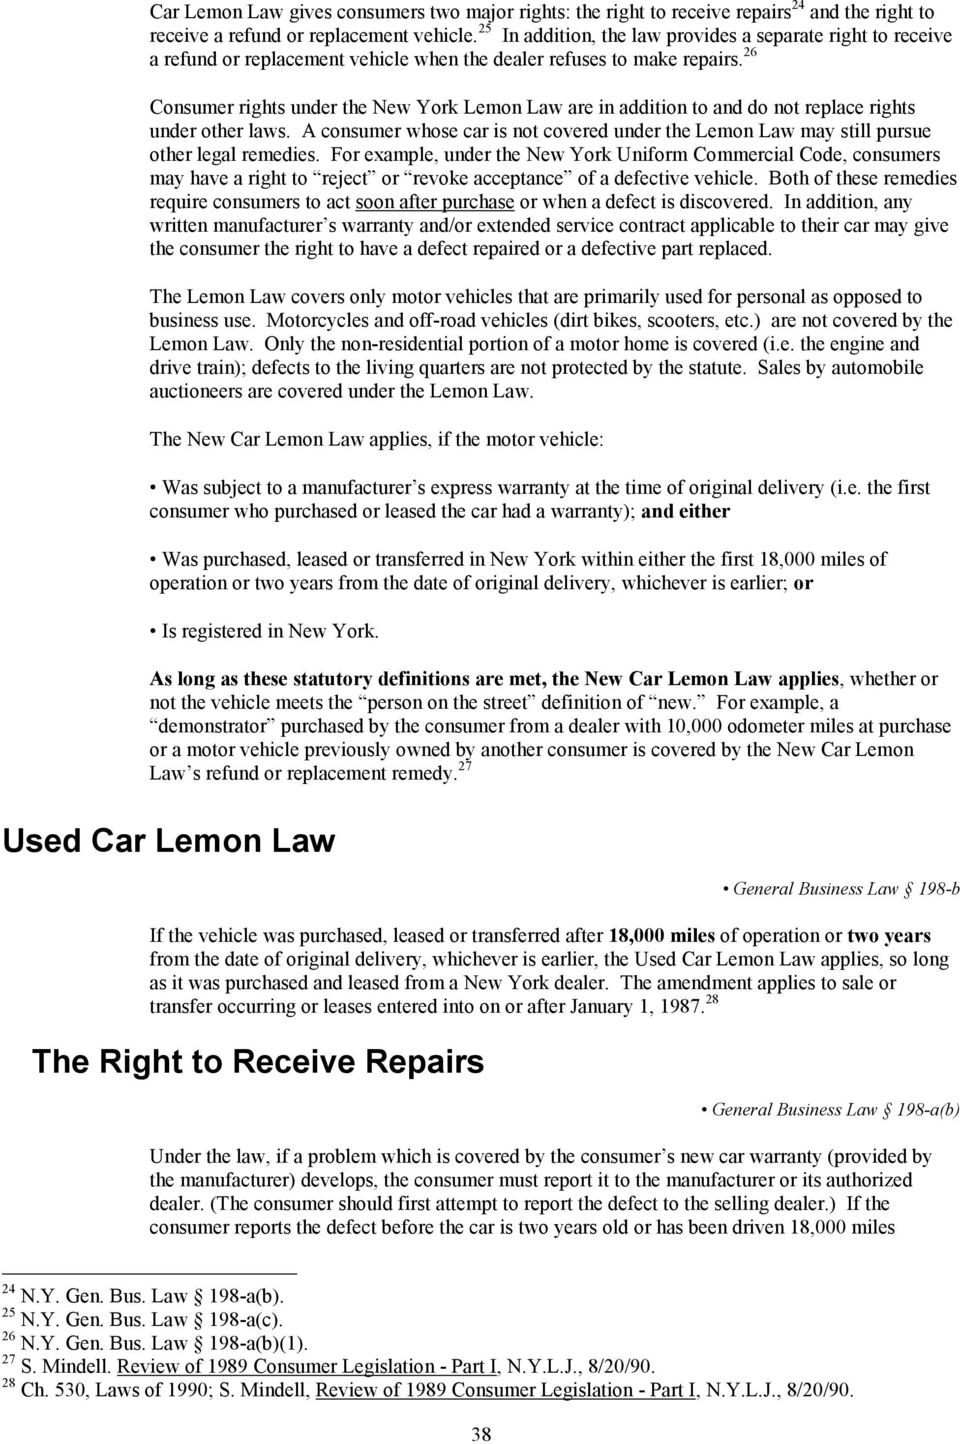 26 Consumer rights under the New York Lemon Law are in addition to and do not replace rights under other laws.